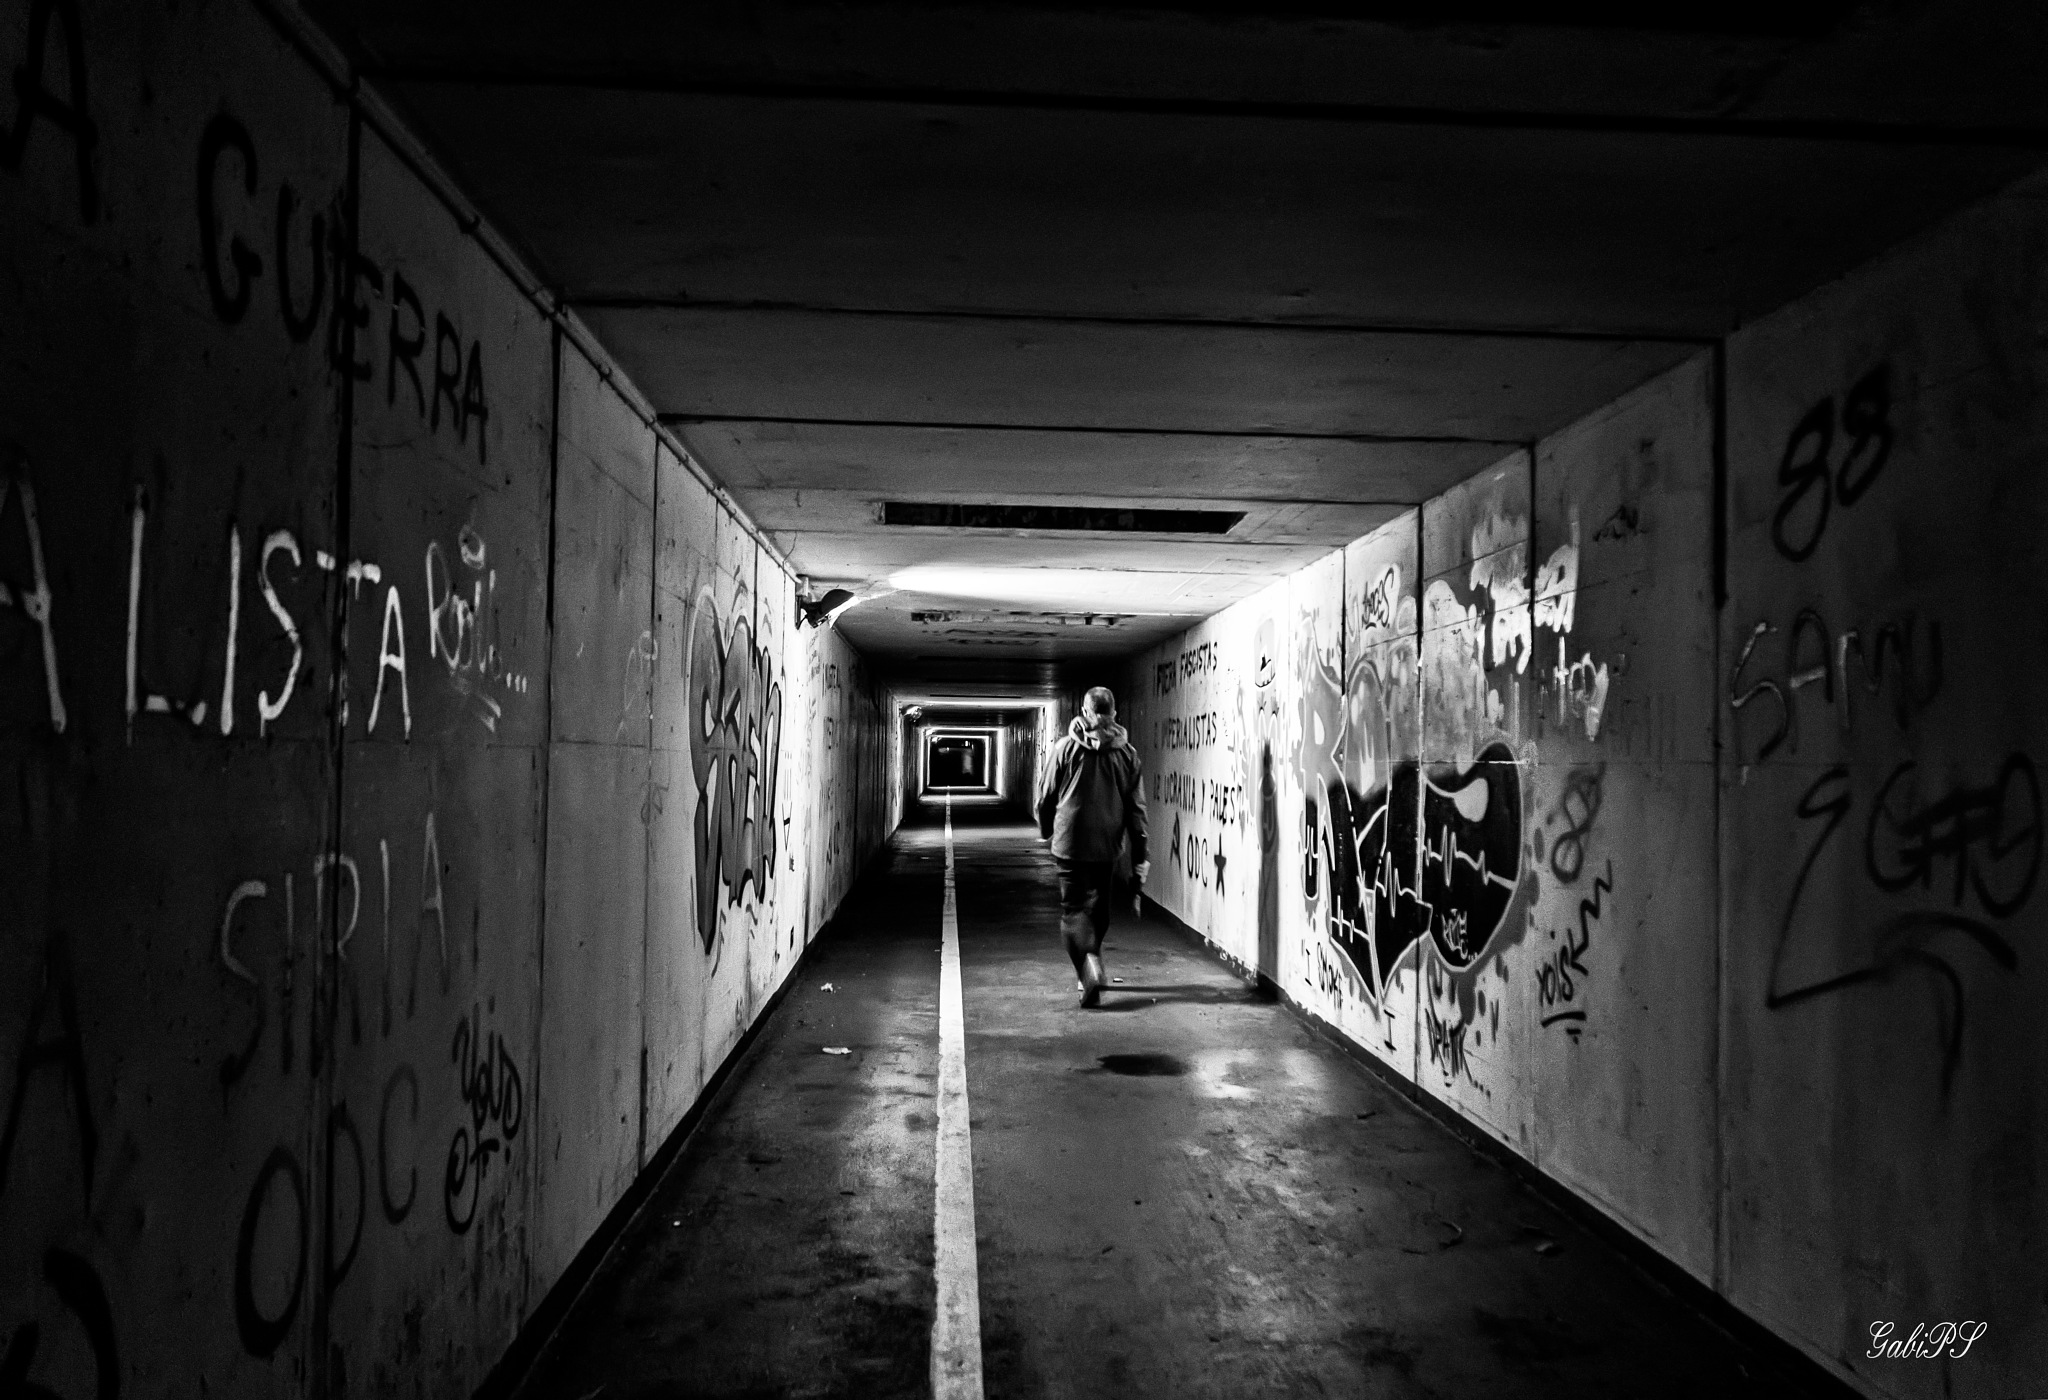 The tunnel by Gabi PS